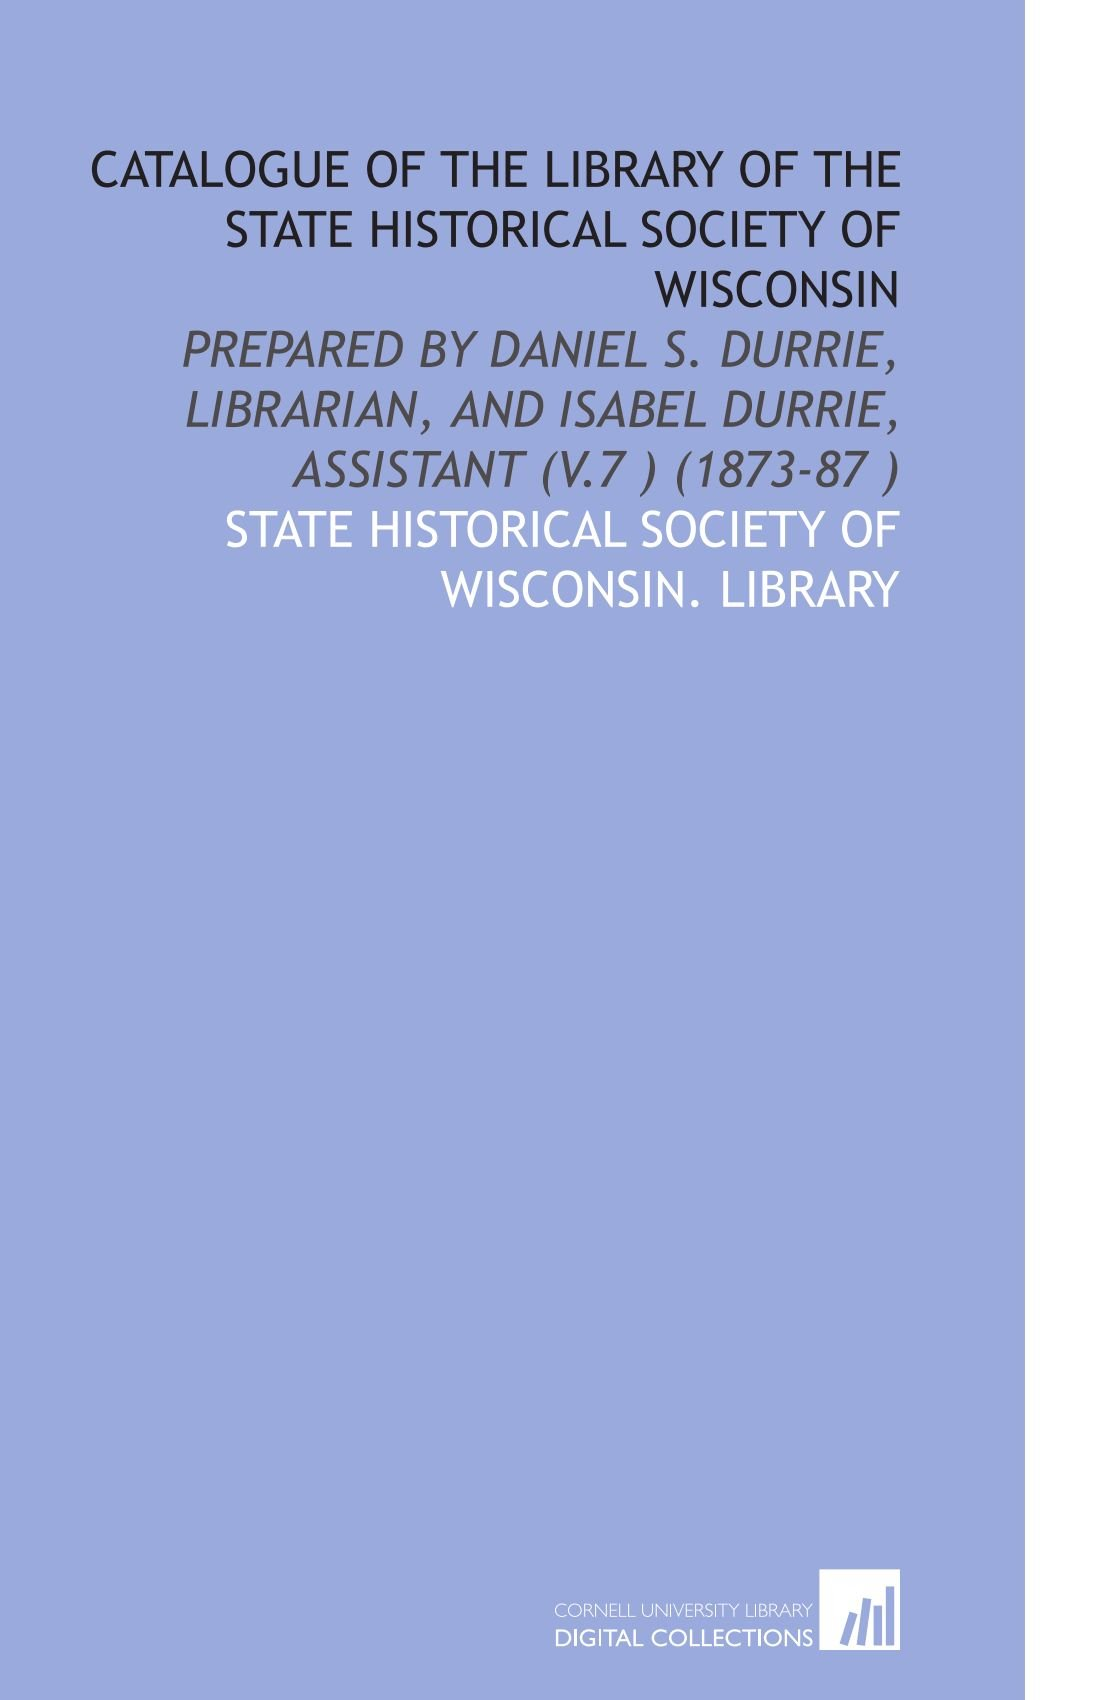 Download Catalogue of the Library of the State Historical Society of Wisconsin: Prepared by Daniel S. Durrie, Librarian, and Isabel Durrie, Assistant (V.7 ) (1873-87 ) PDF